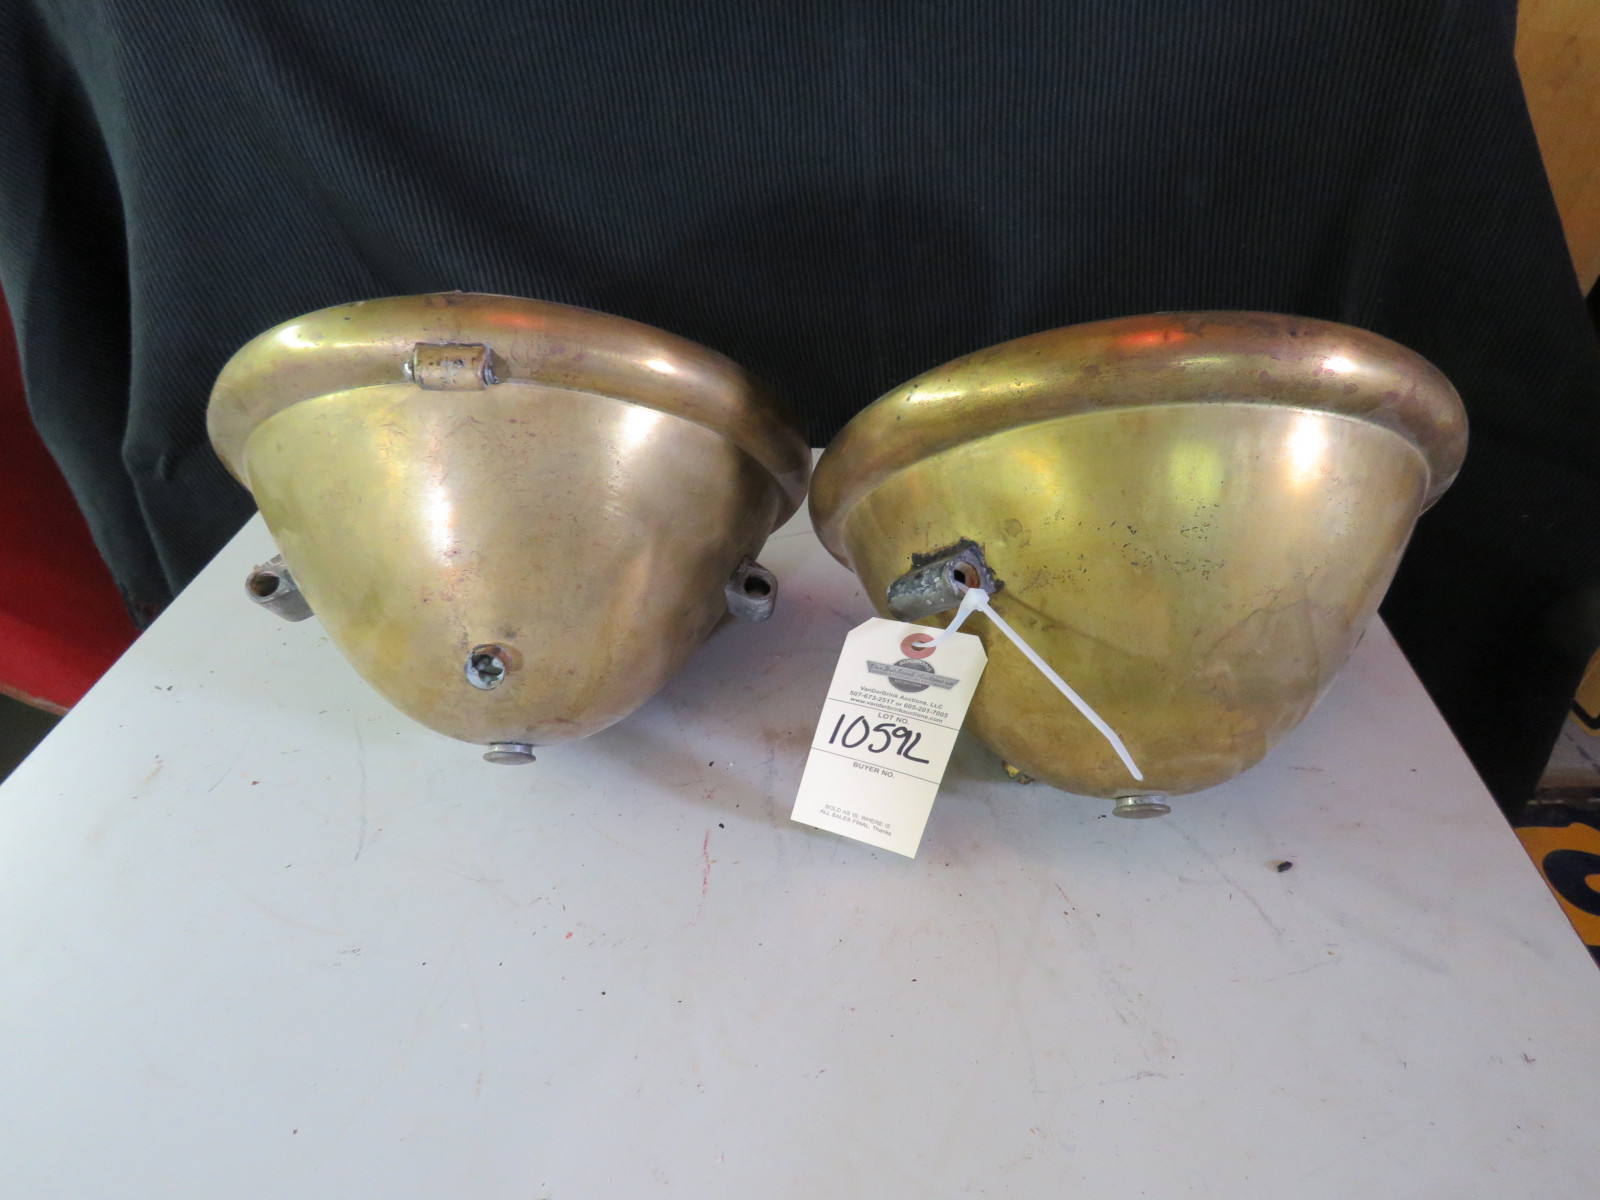 Pair of Brass Headlights - Image 2